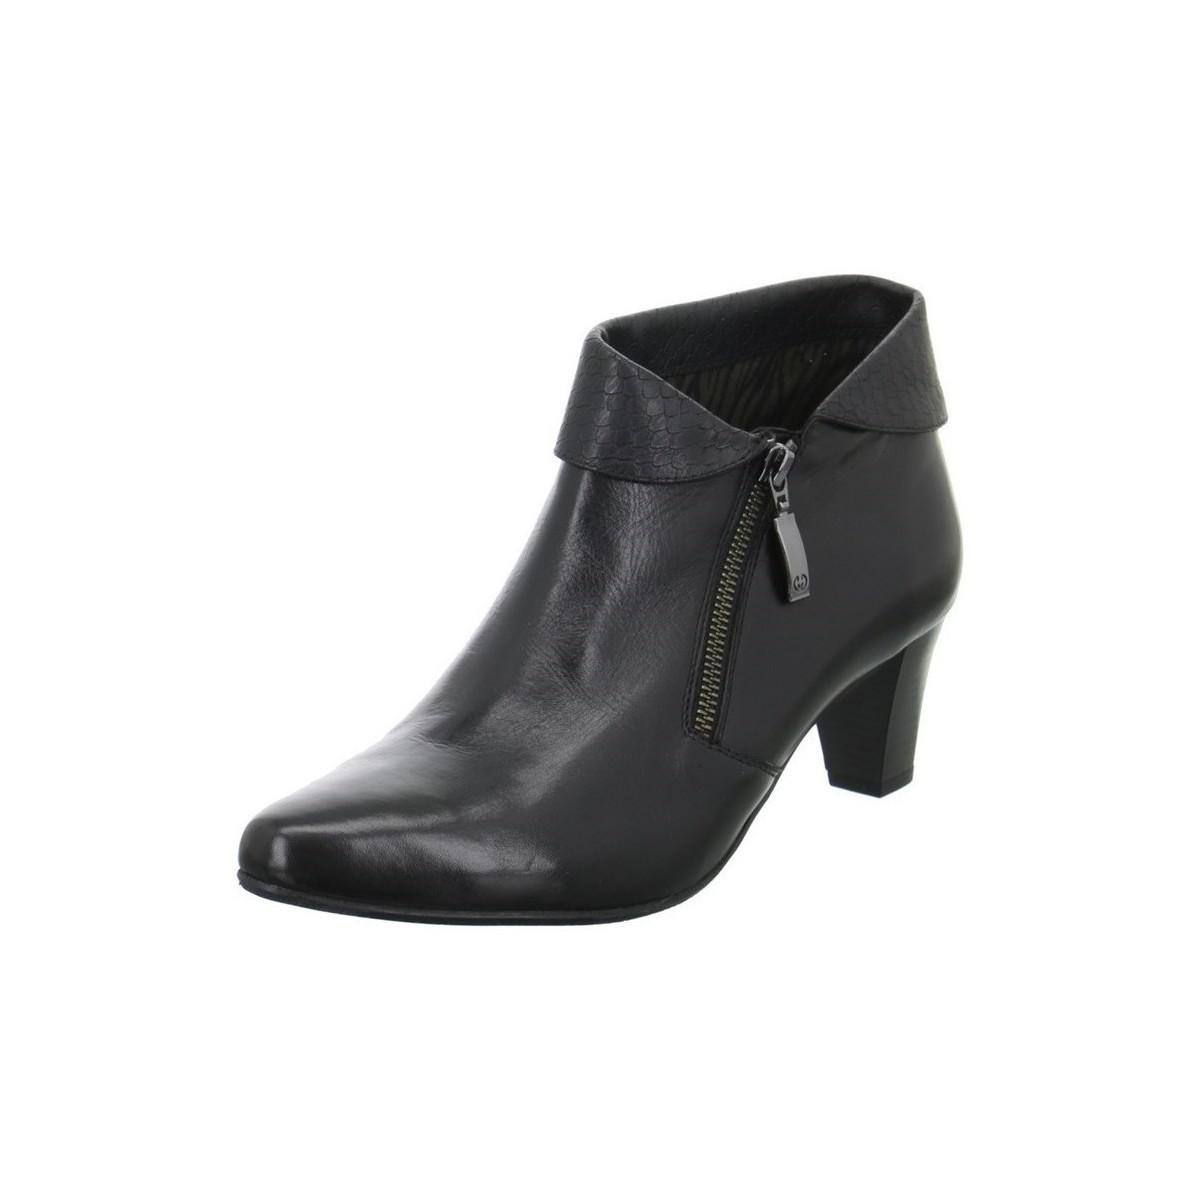 Vando 01, Womens Ankle Boots Gerry Weber